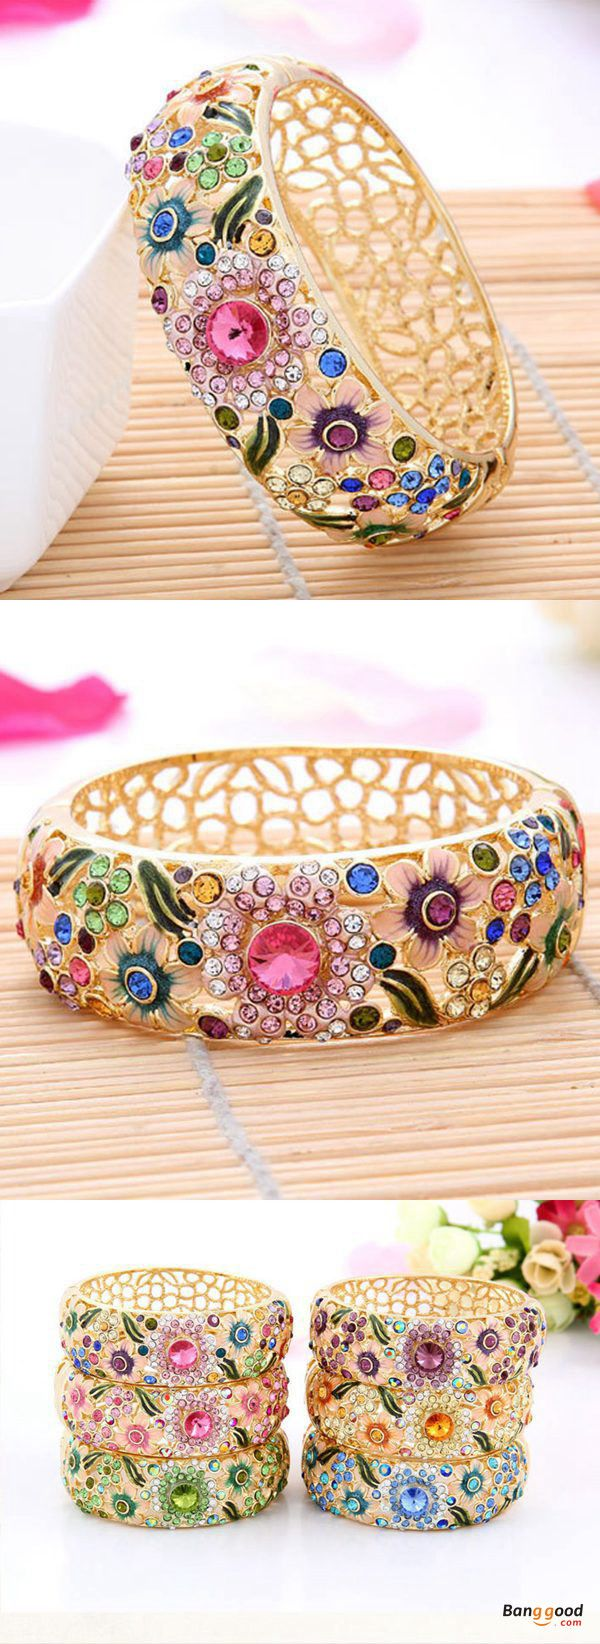 US$19.99+Free shipping. Material: Alloy, Rhinestone. Plating: 18K Gold Plated. Fall in love with vintage style! Women's Jewelry, Jewelry Making, Women's Fashion,  Tree Infinity Leather Bracelet.